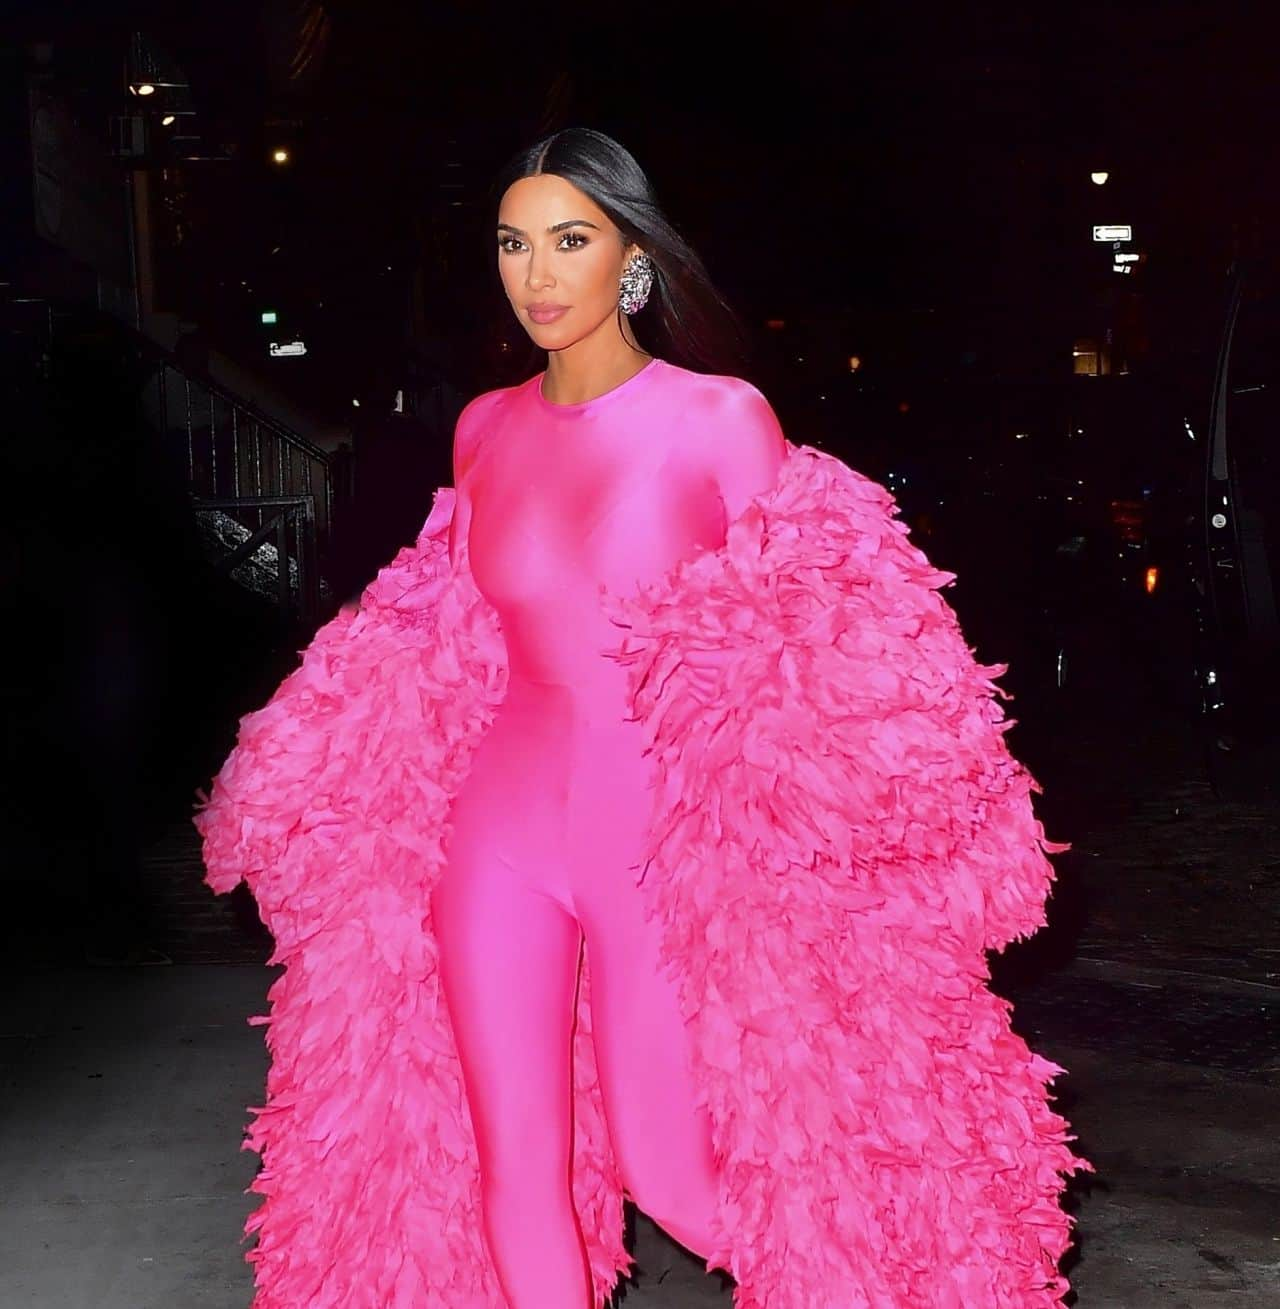 Kim Kardashian Looks Stunning in a Hot Pink Feathered Catsuit